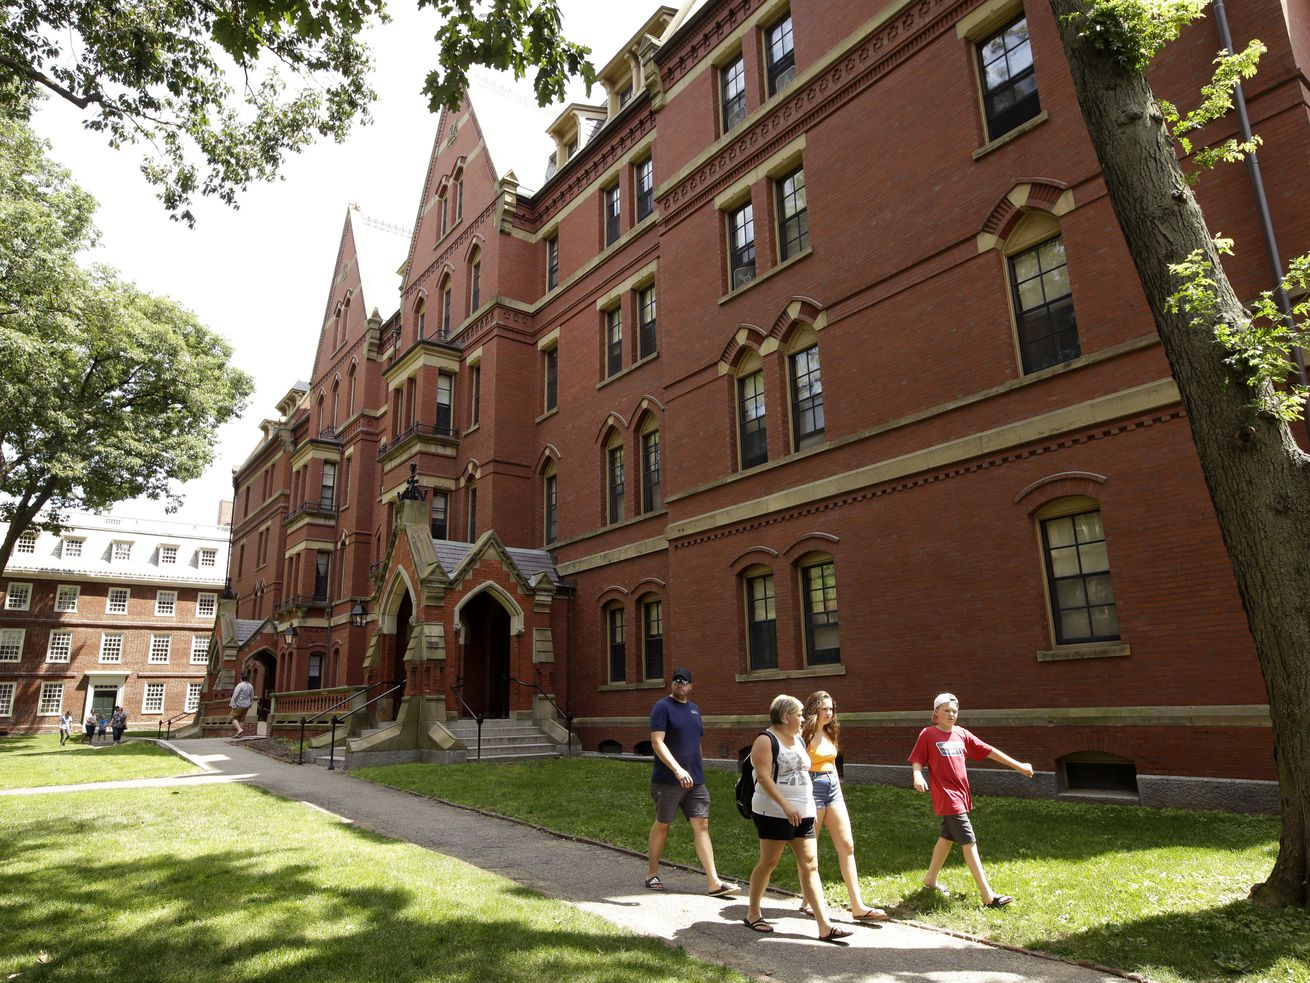 People walk along a sidewalk on the campus of Harvard University, in Cambridge, Mass.